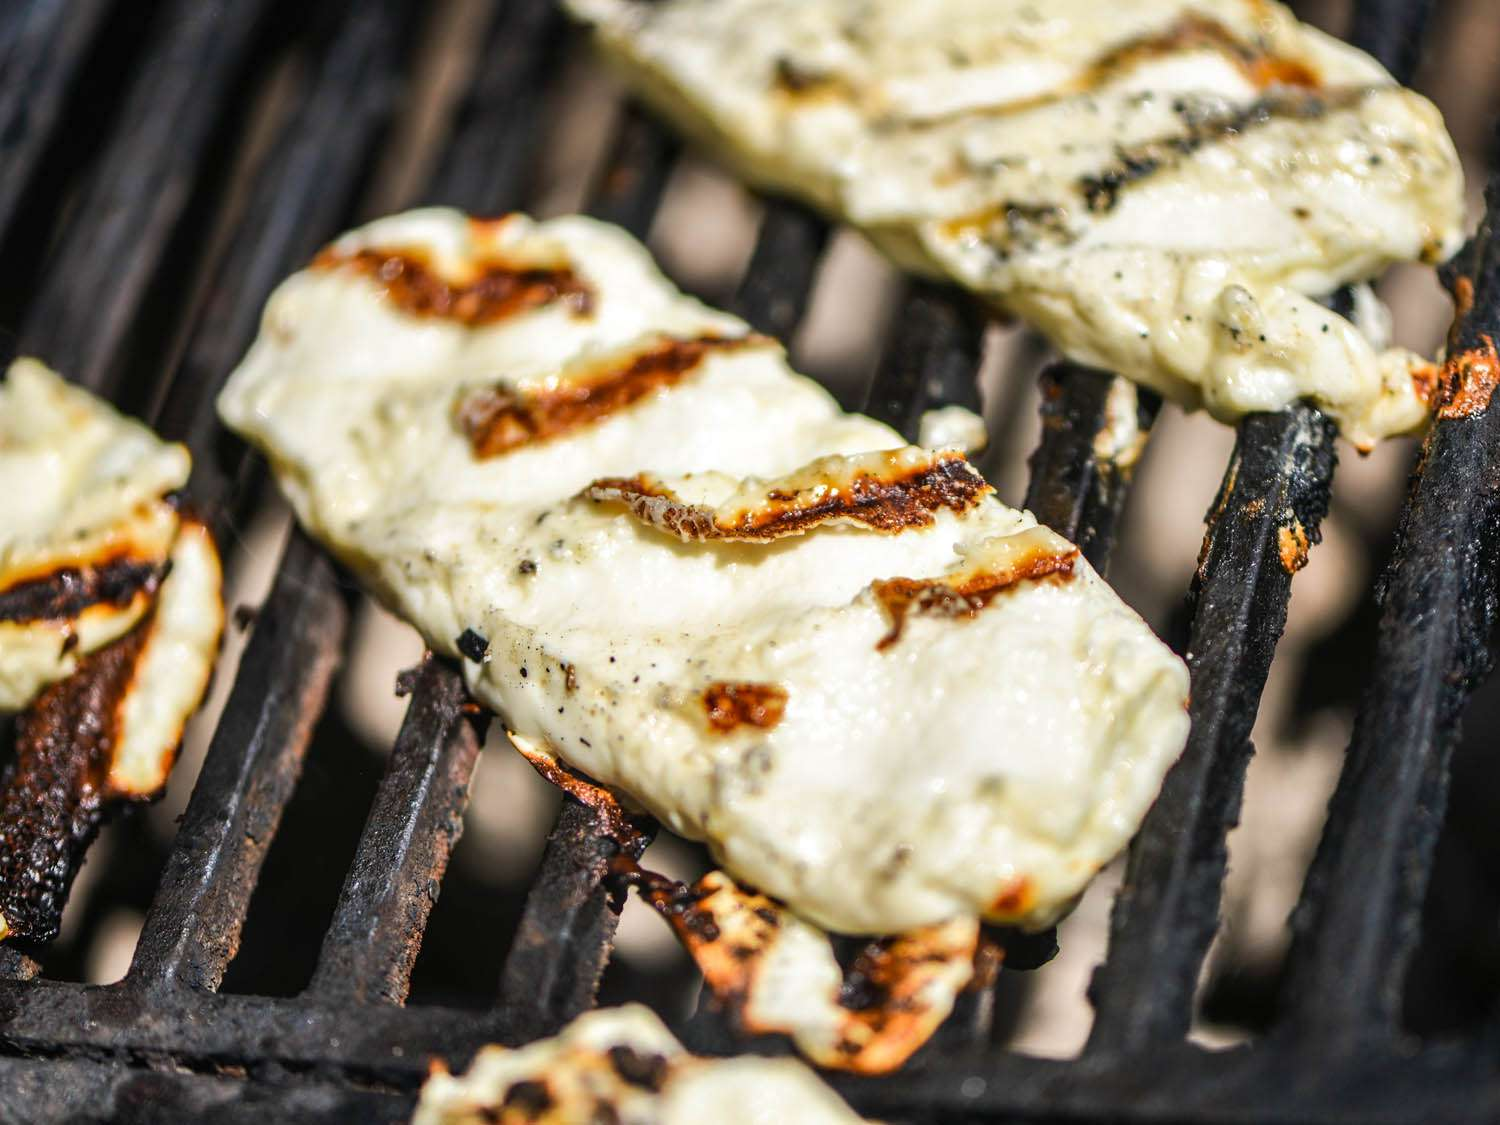 20140710-cheeses-you-can-grill-queso-panela-grilled-joshua-bousel.jpg